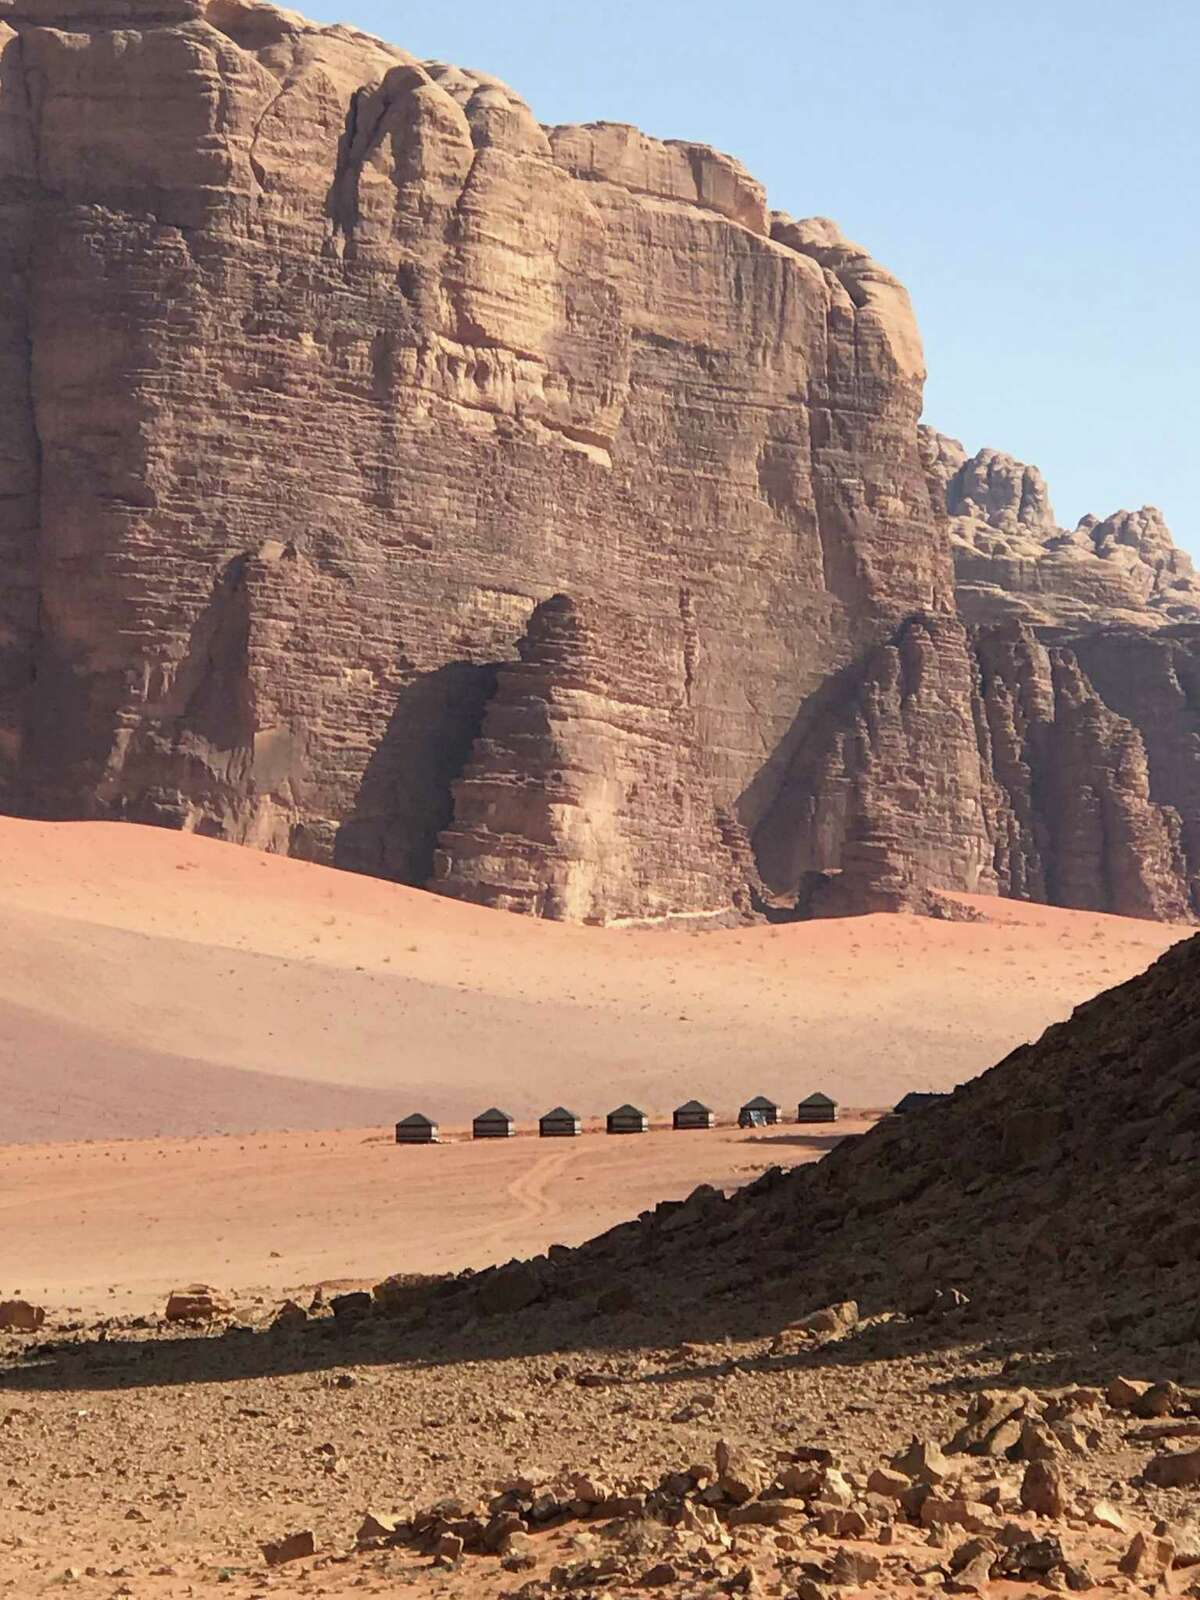 Bedouin camping tents are set up at the base of cliffs in the Wadi Rum desert, where many movies have been filmed.